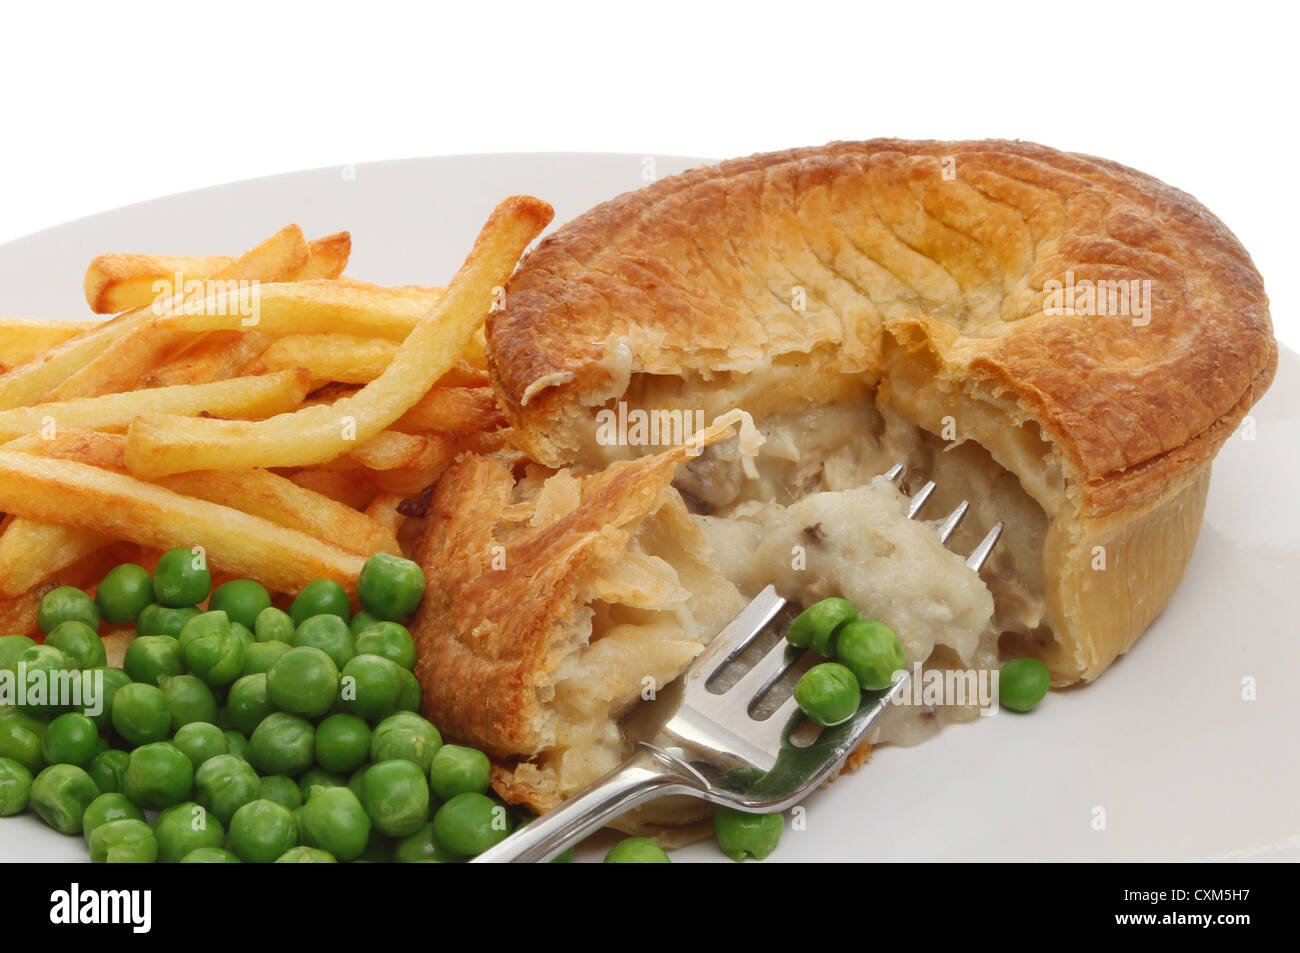 Closeup of a chicken pie chips and peas with a fork on a plate -  sc 1 st  Alamy & Chicken Chips Plate Stock Photos u0026 Chicken Chips Plate Stock Images ...